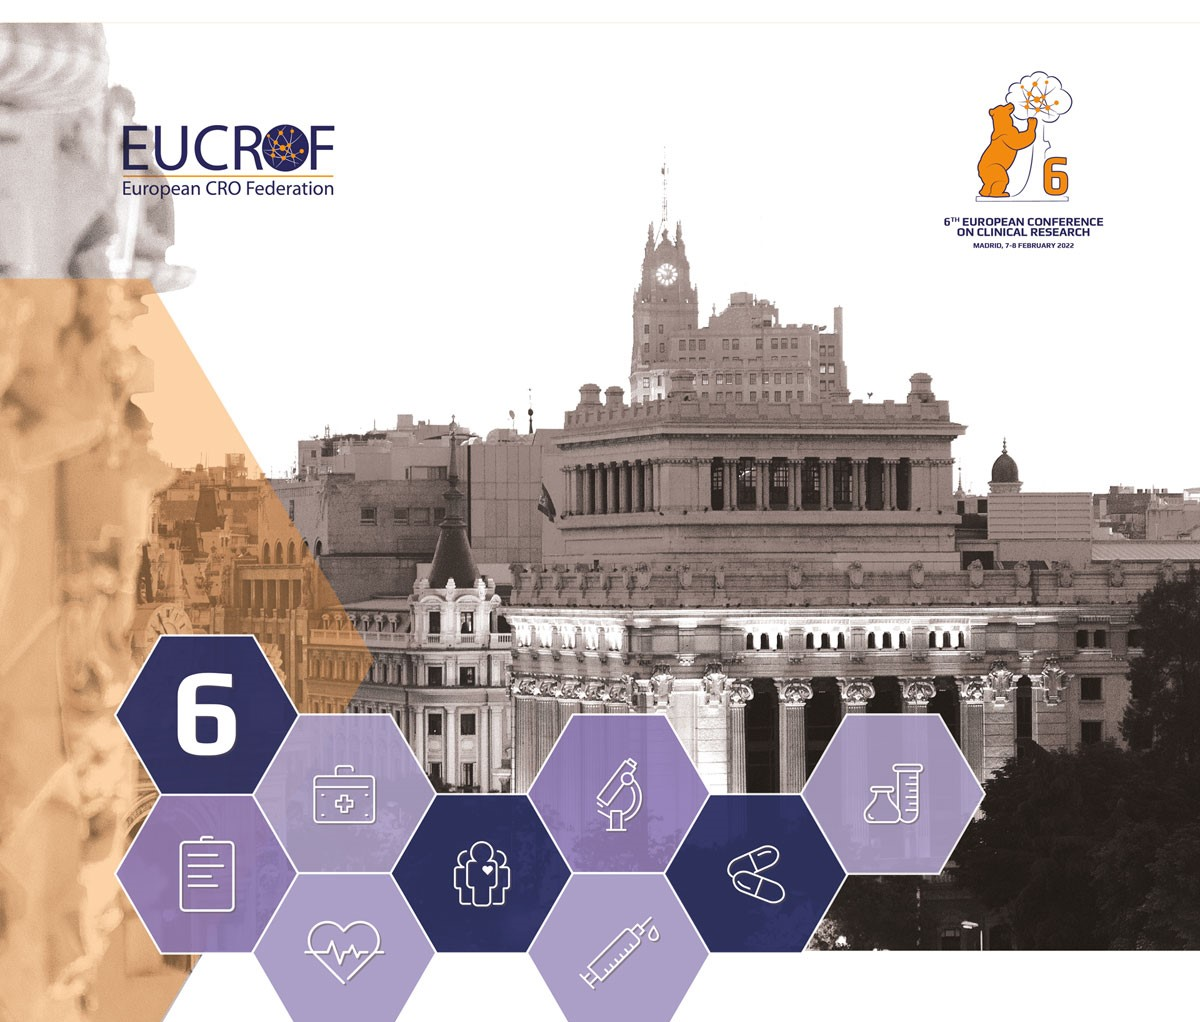 6th European Conference on Clinical Research  7 & 8 February, 2022